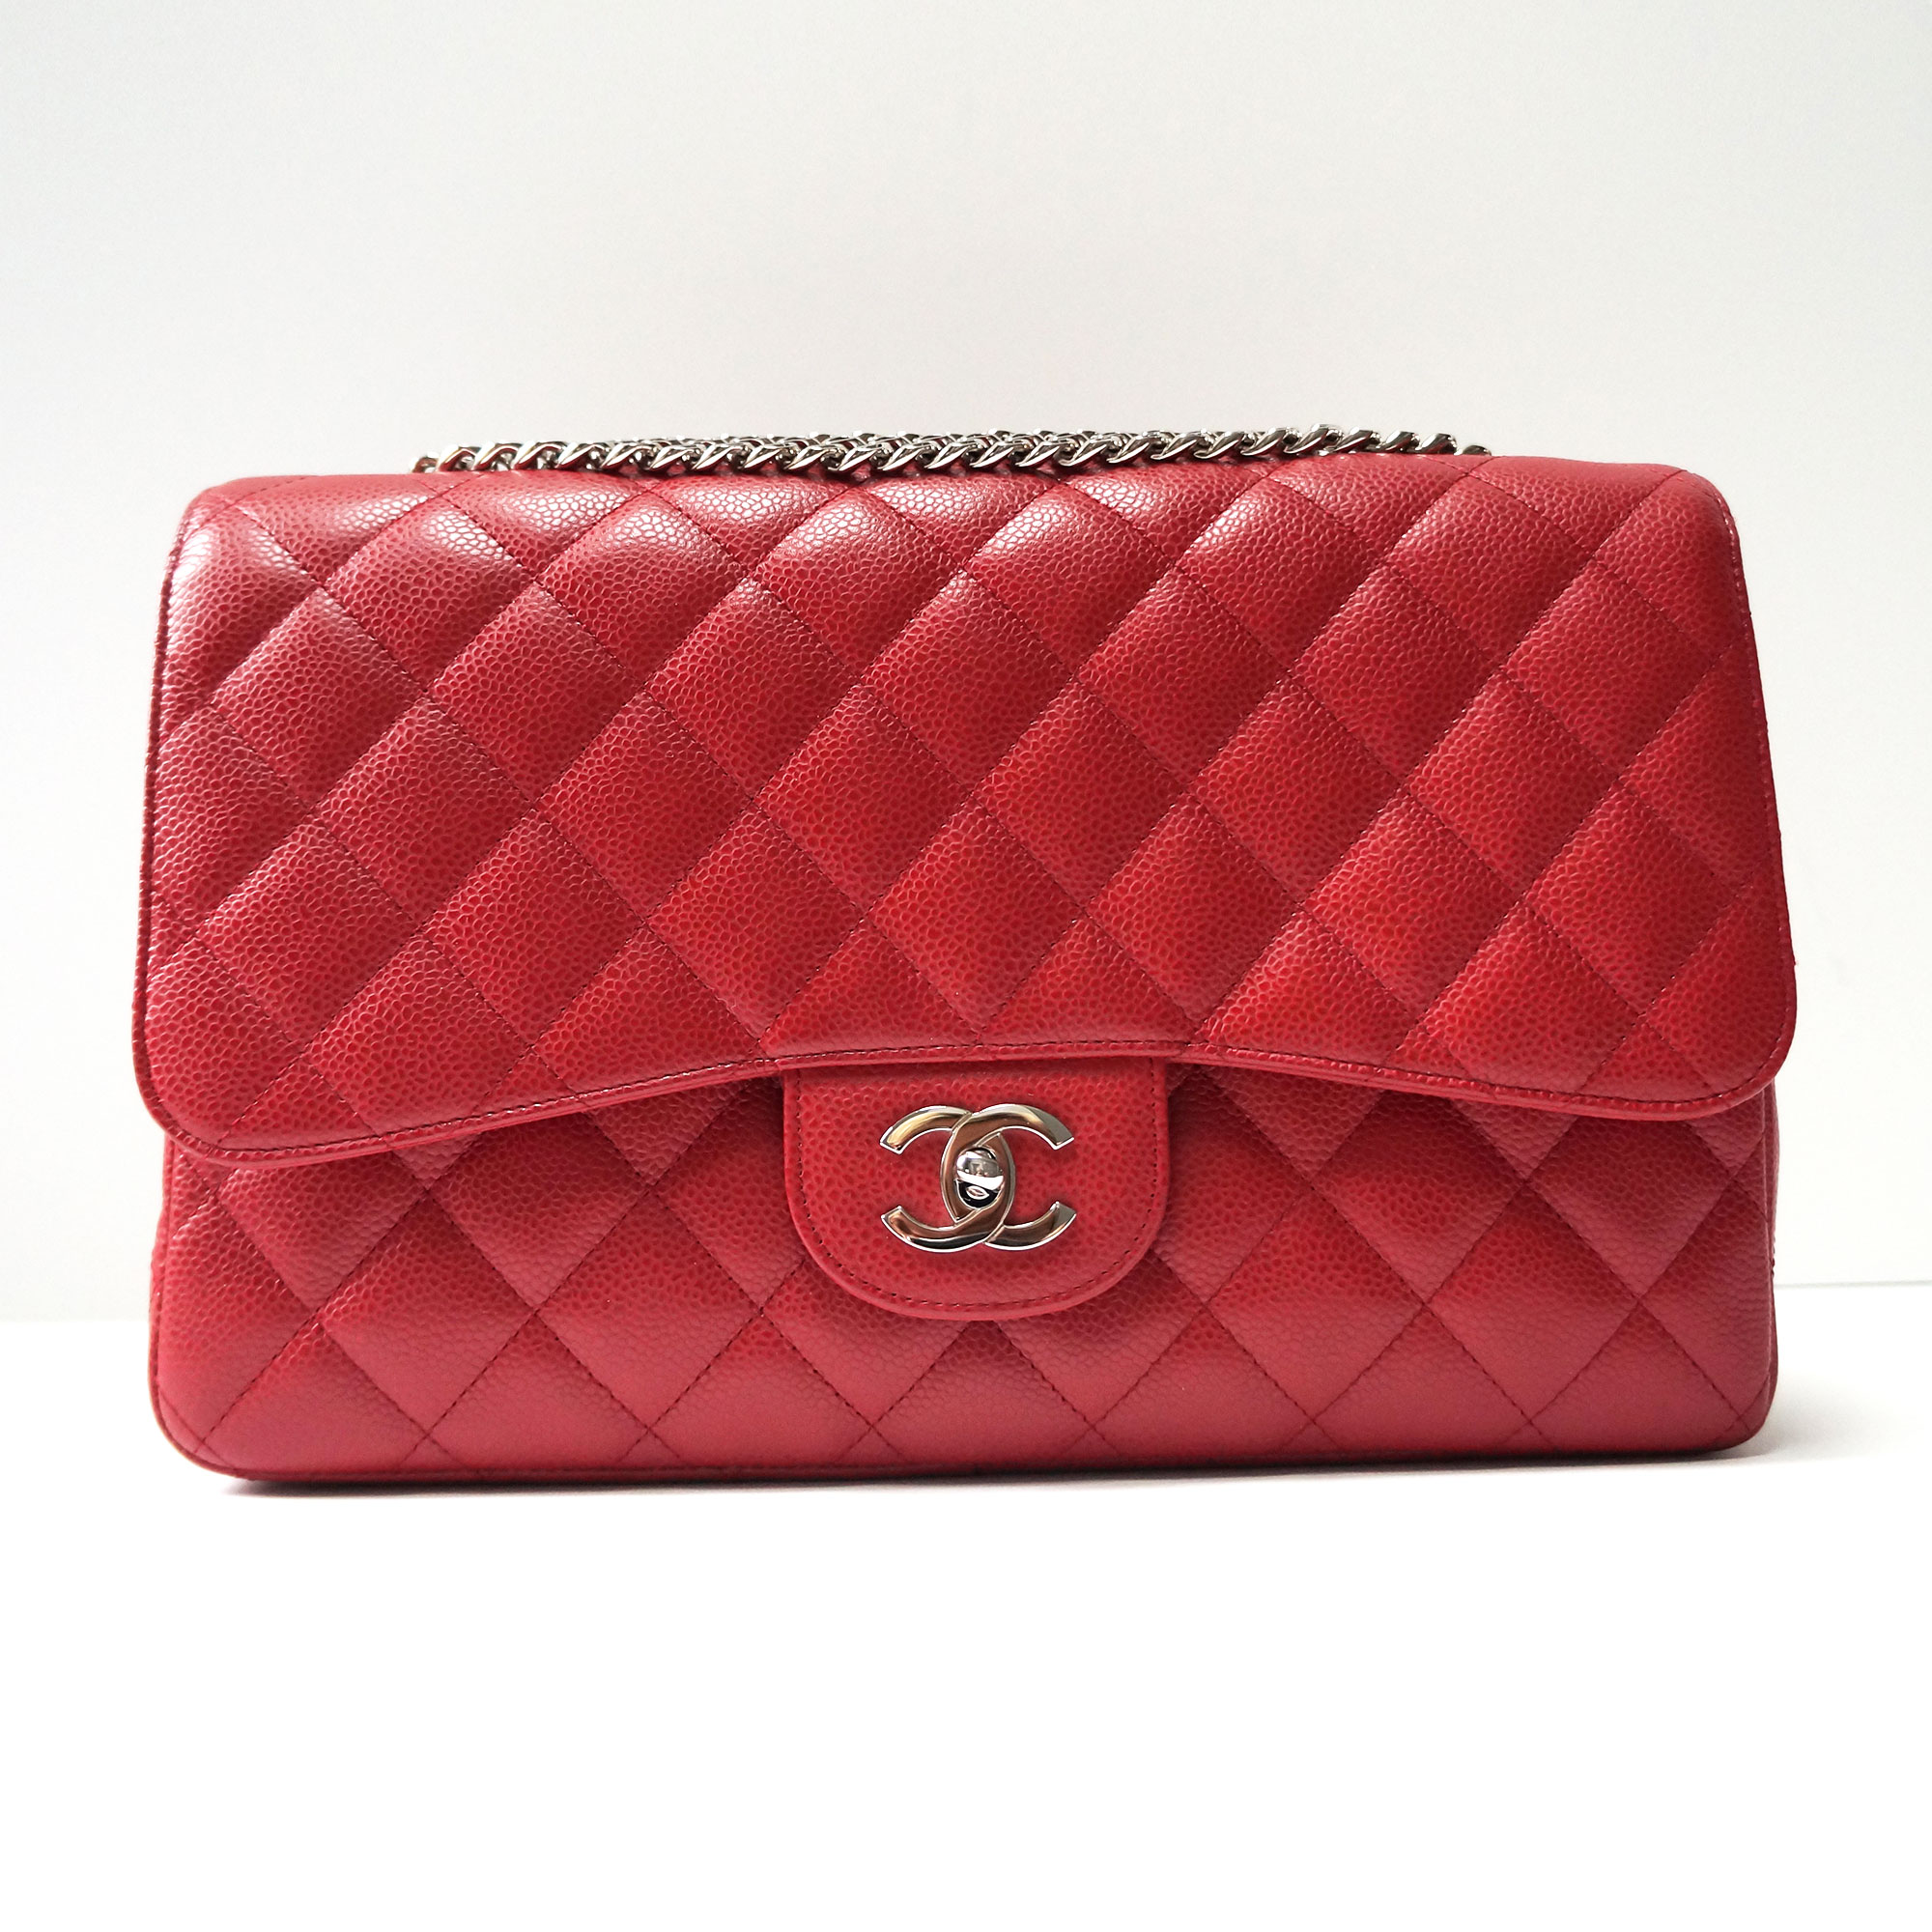 10327aedf3a370 Chanel Red Caviar Leather Jumbo Flap Bag with Bijoux Chain | | My ...